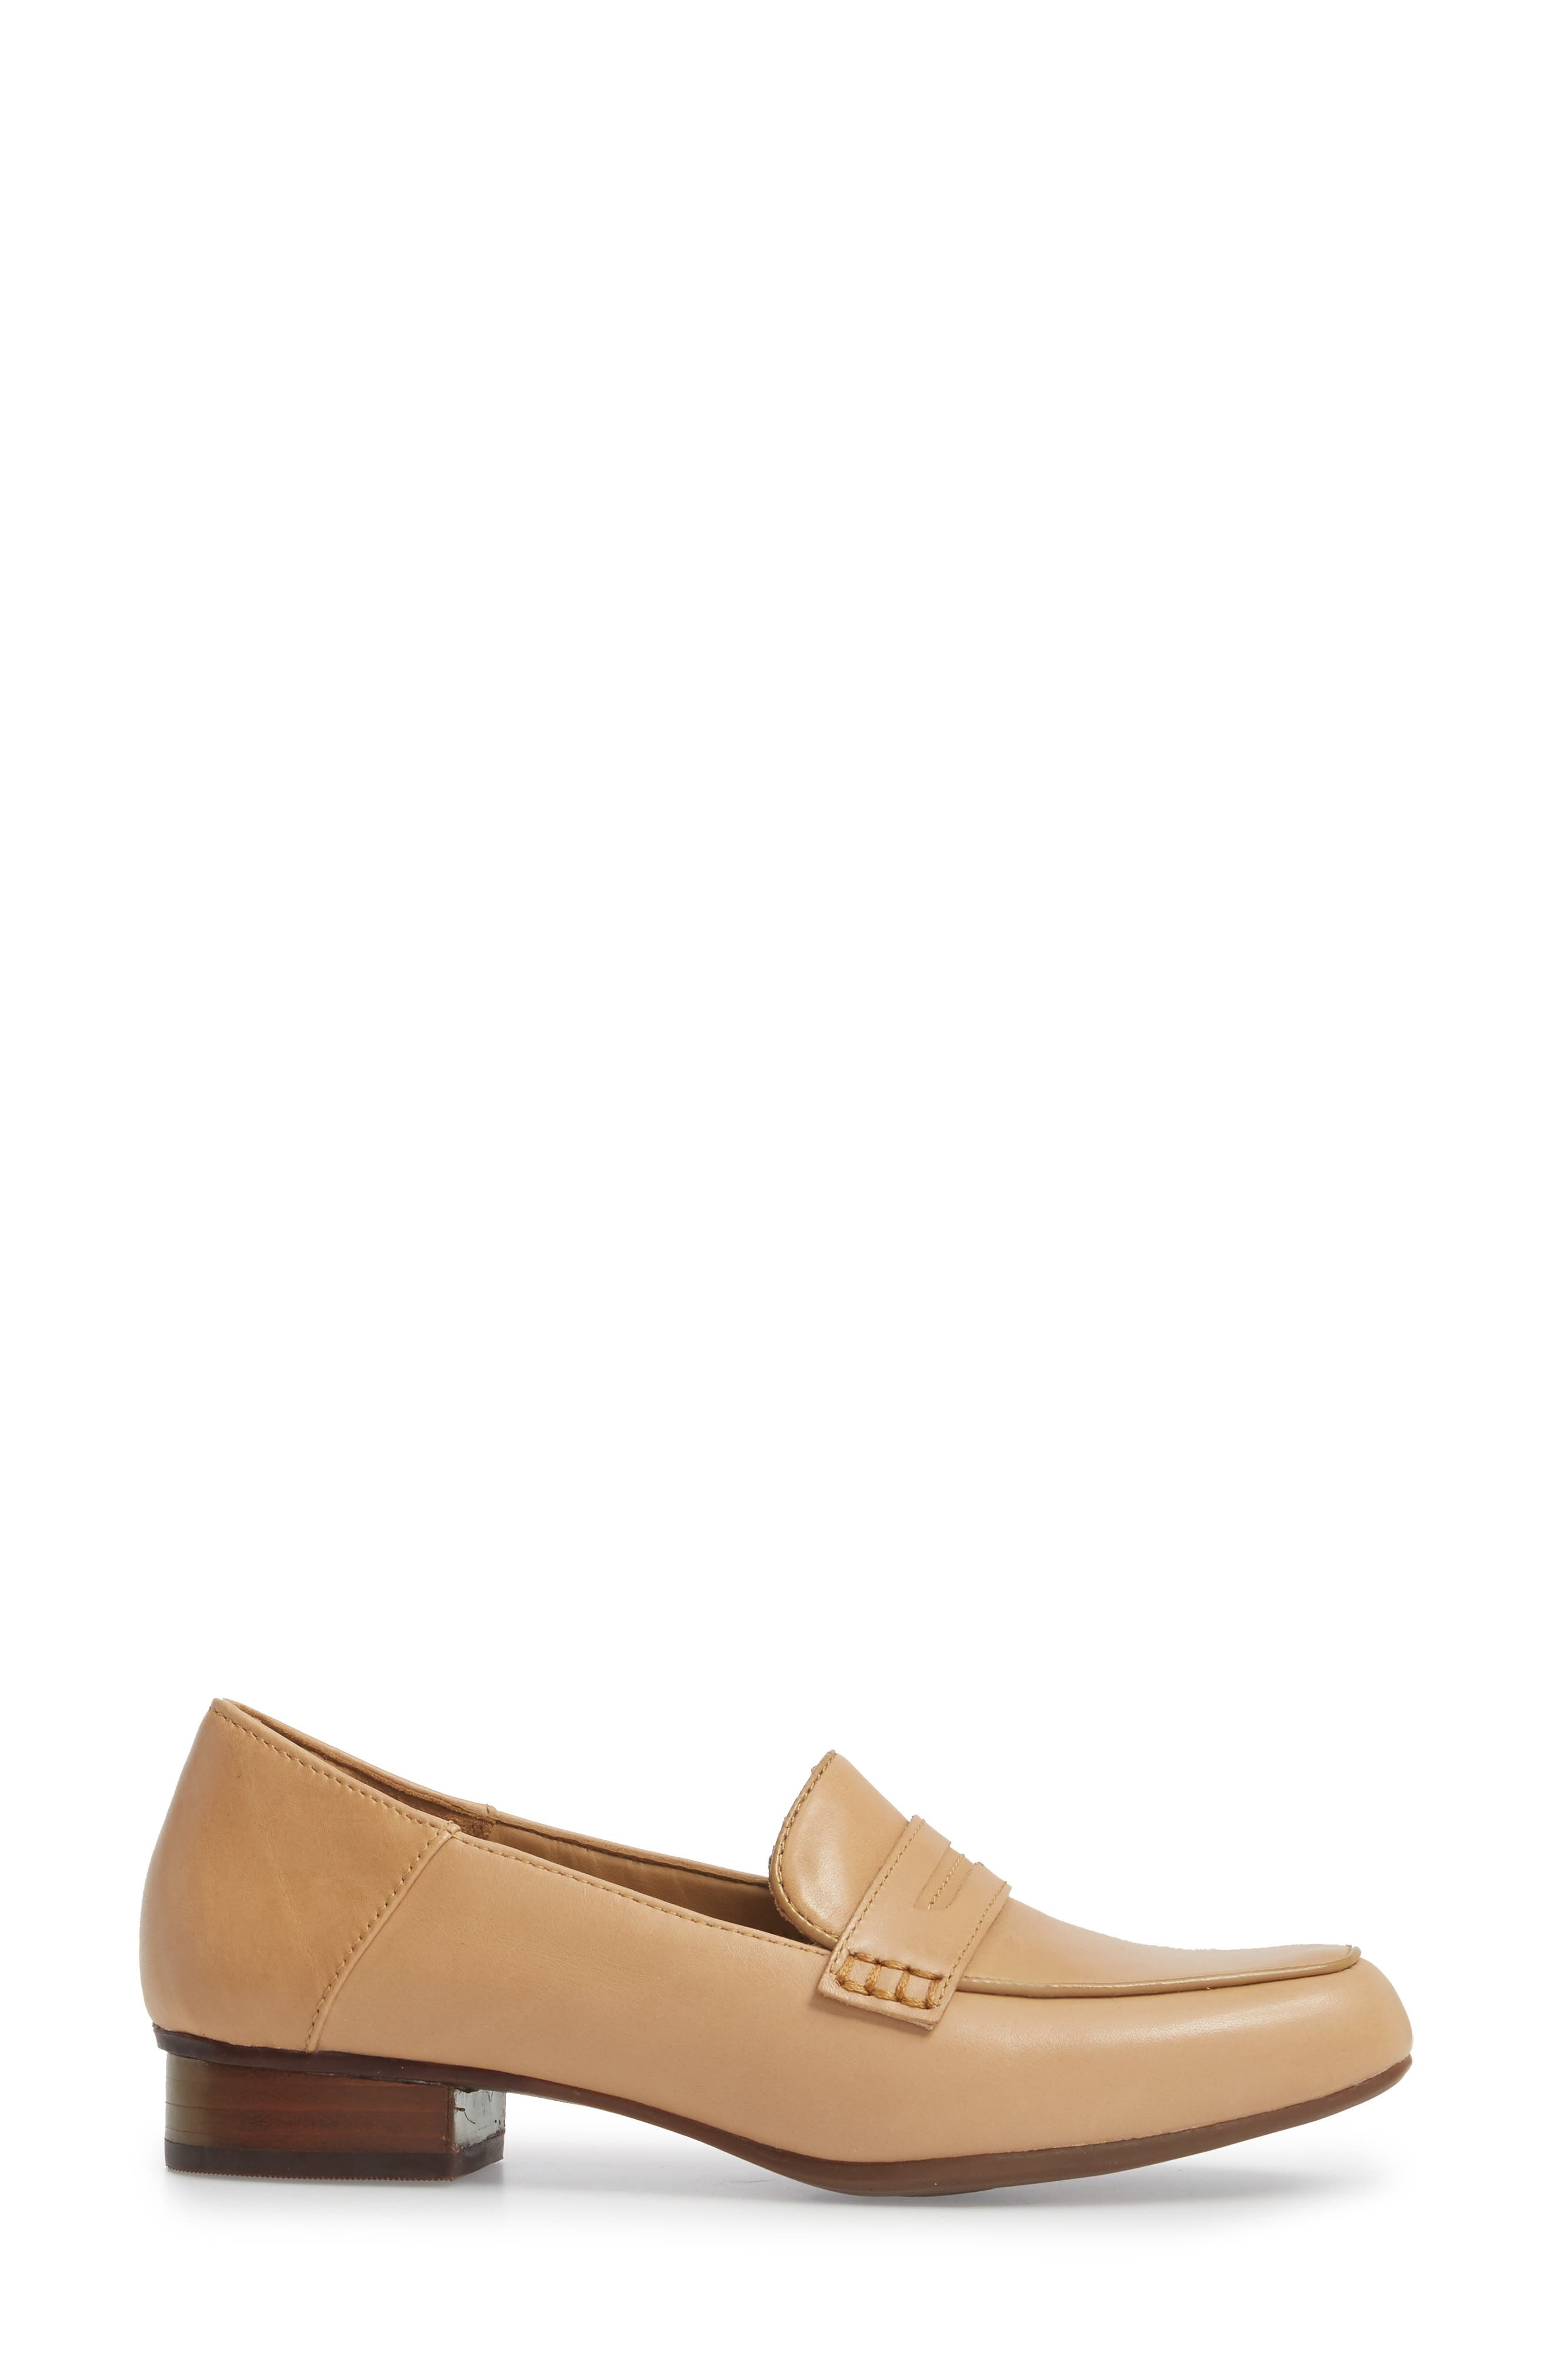 Keesha Cora Penny Loafer,                             Alternate thumbnail 3, color,                             Light Tan Leather